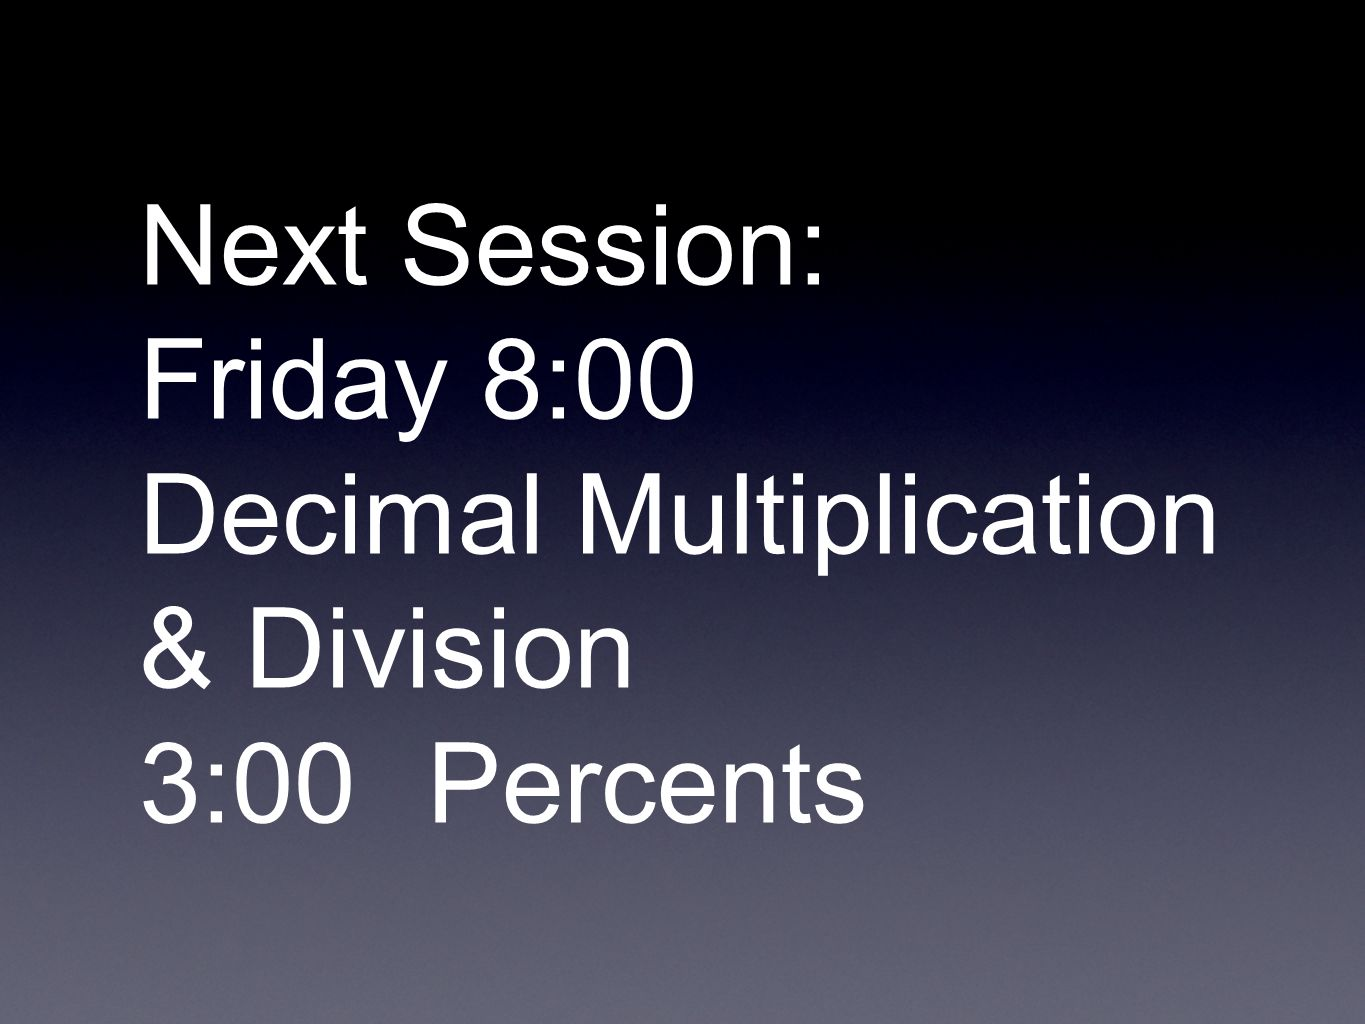 Next Session: Friday 8:00 Decimal Multiplication & Division 3:00Percents